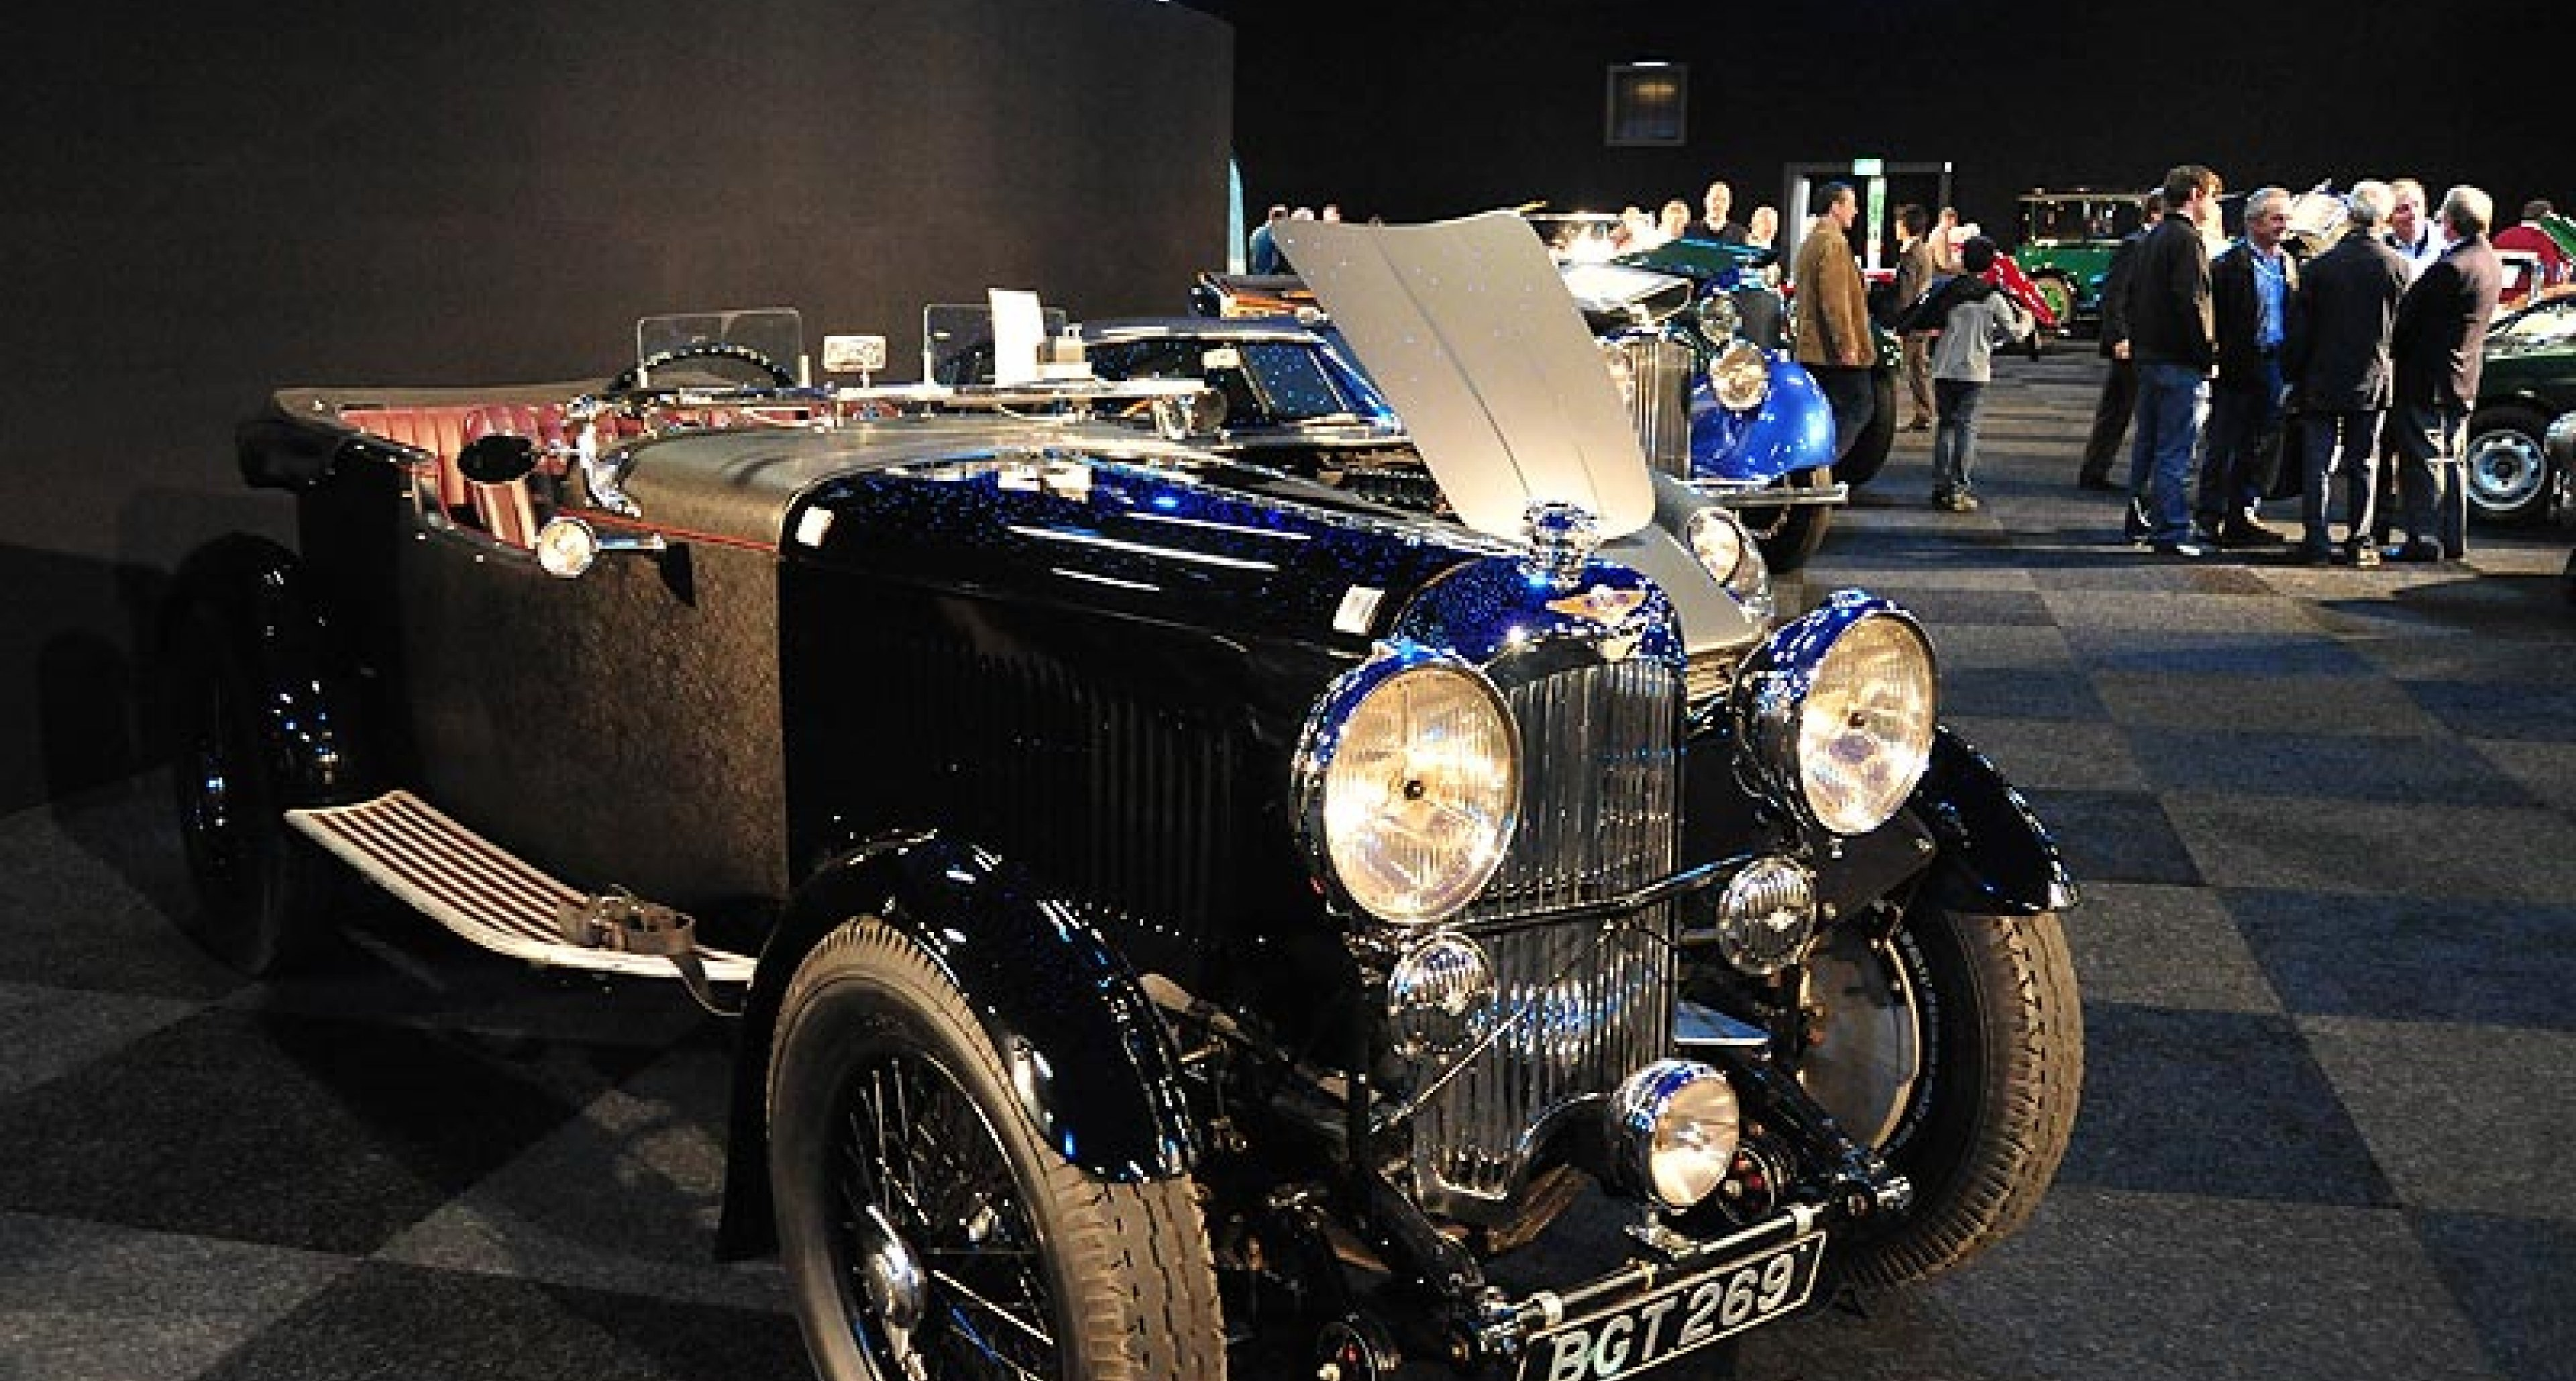 RM Auctions - 'Automobiles of London' 27 October 2010 - Review